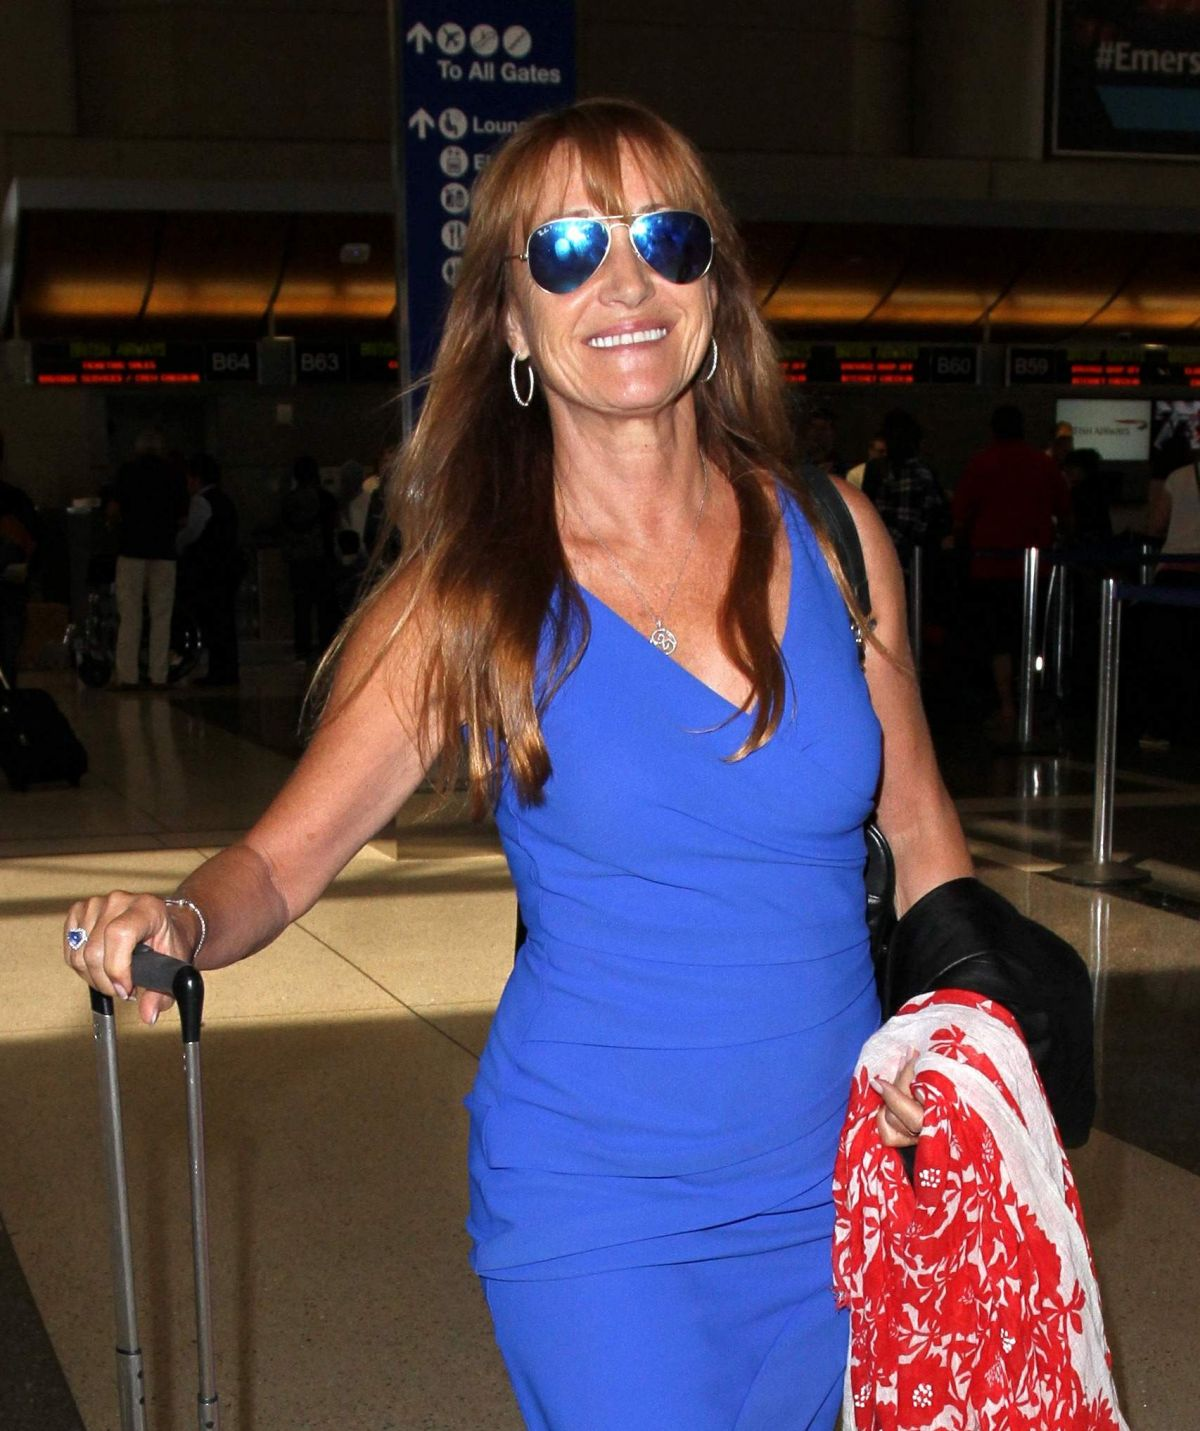 JANE SEYMOUR at LAX Airport in Los Angeles 09/13/2016